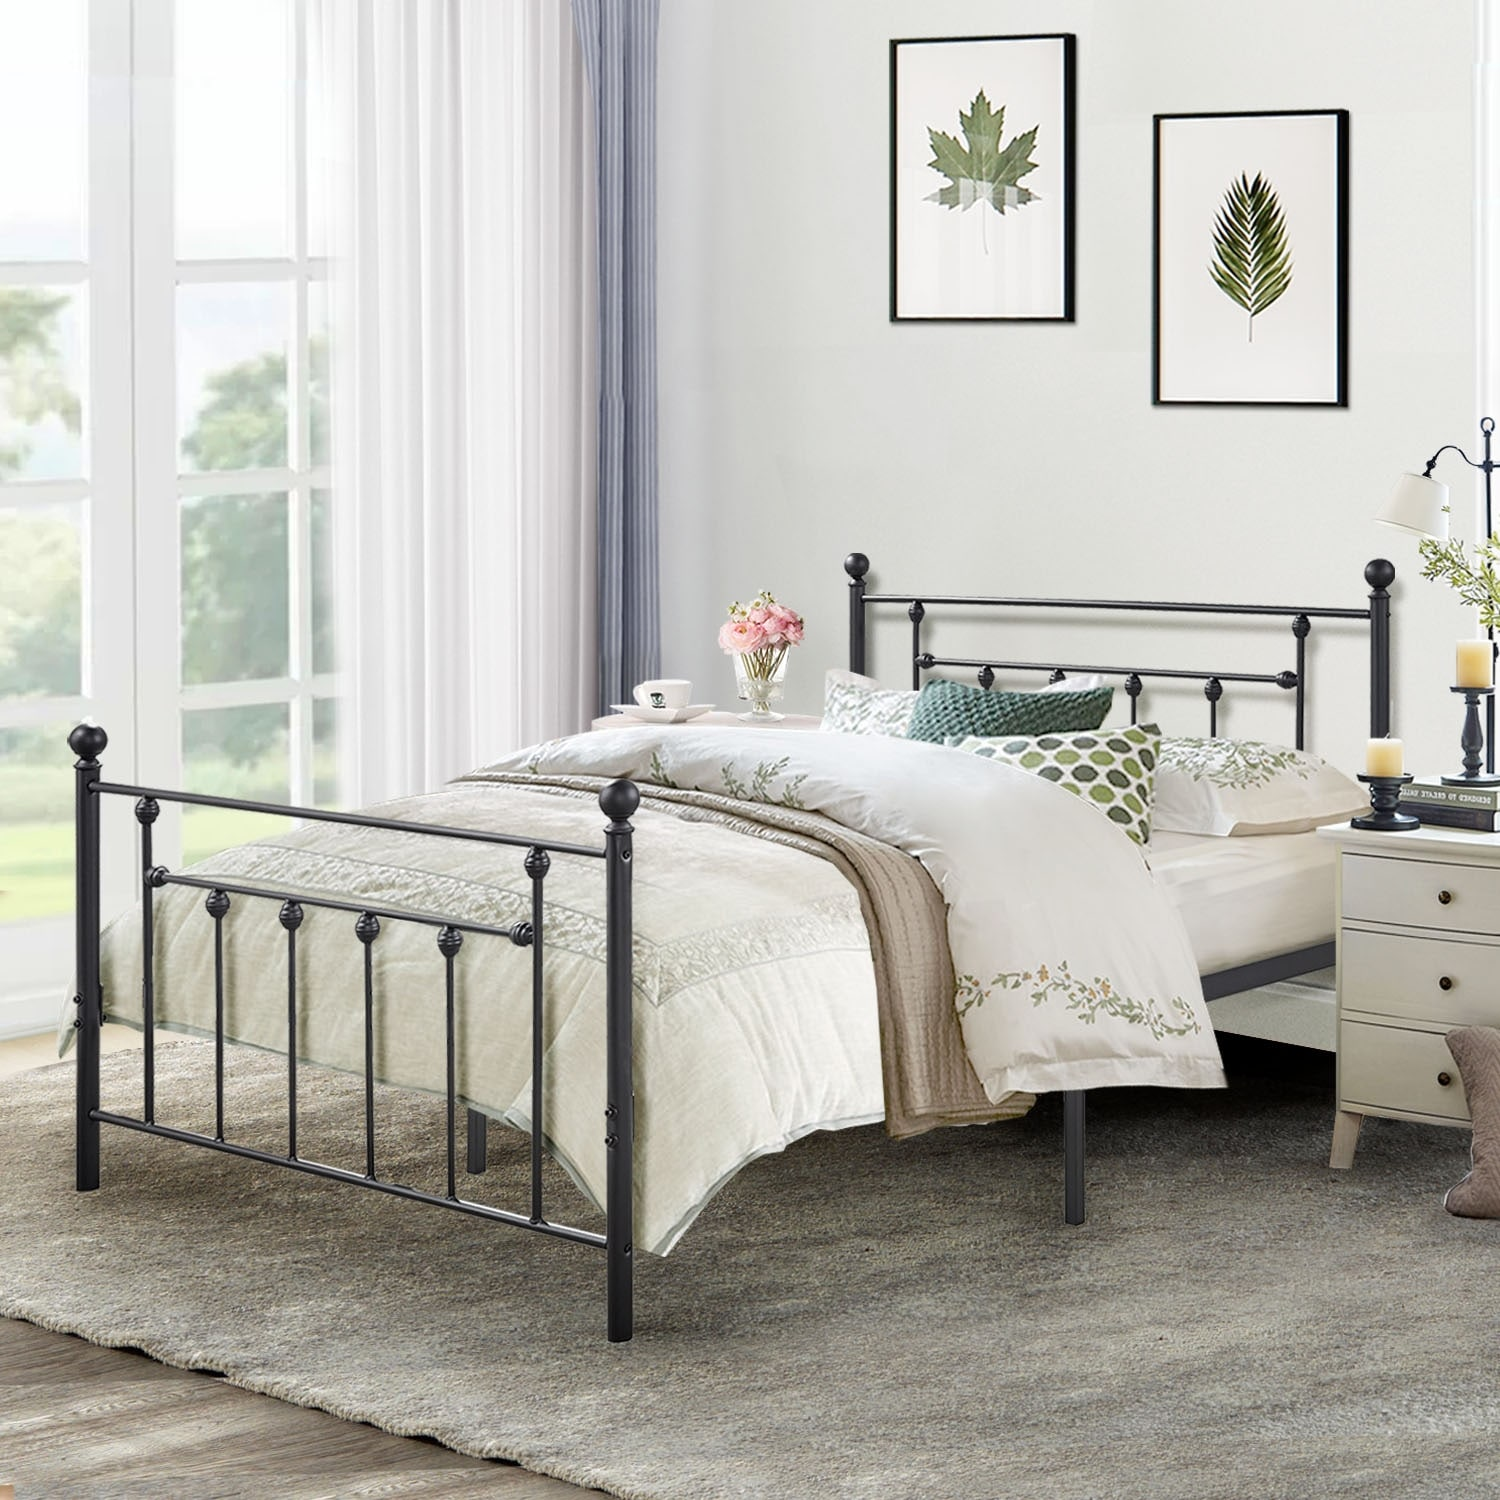 Exceptionnel VECELO Metal Beds Victorian Metal Platform Bed Frames With Headboard And  Footboard